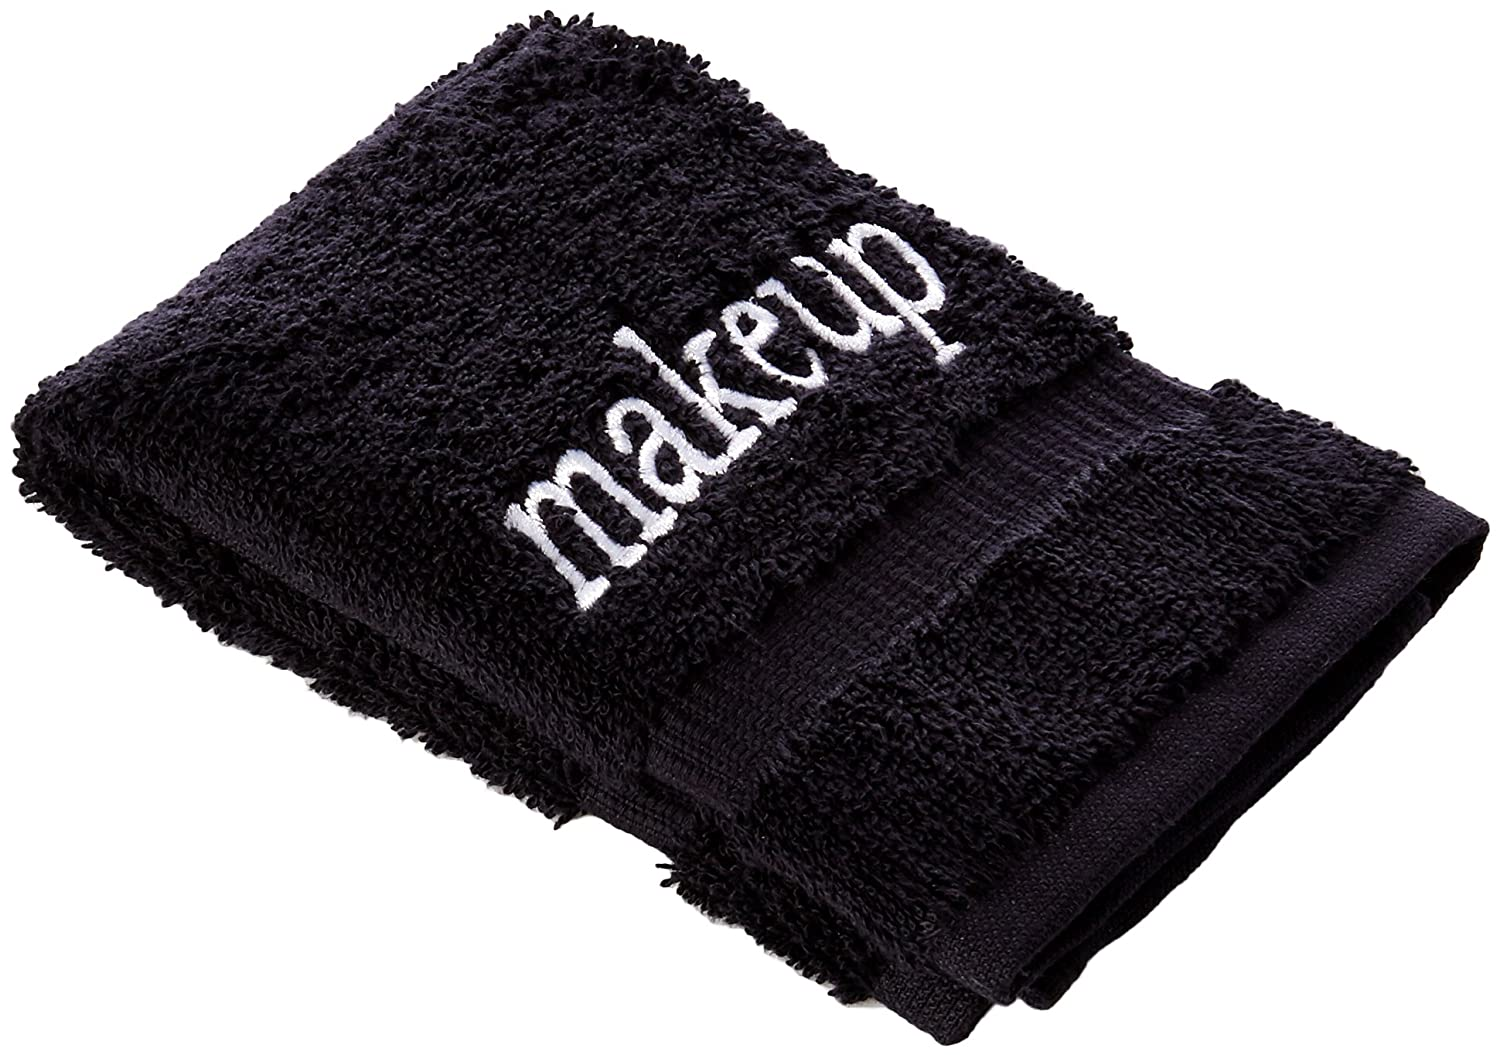 Luxury Black Cloth 100% Genuine Turkish Cotton Make up Cleansing (Set of 6) Chakir Turkish Linens HC-MK-BLK-ST-1